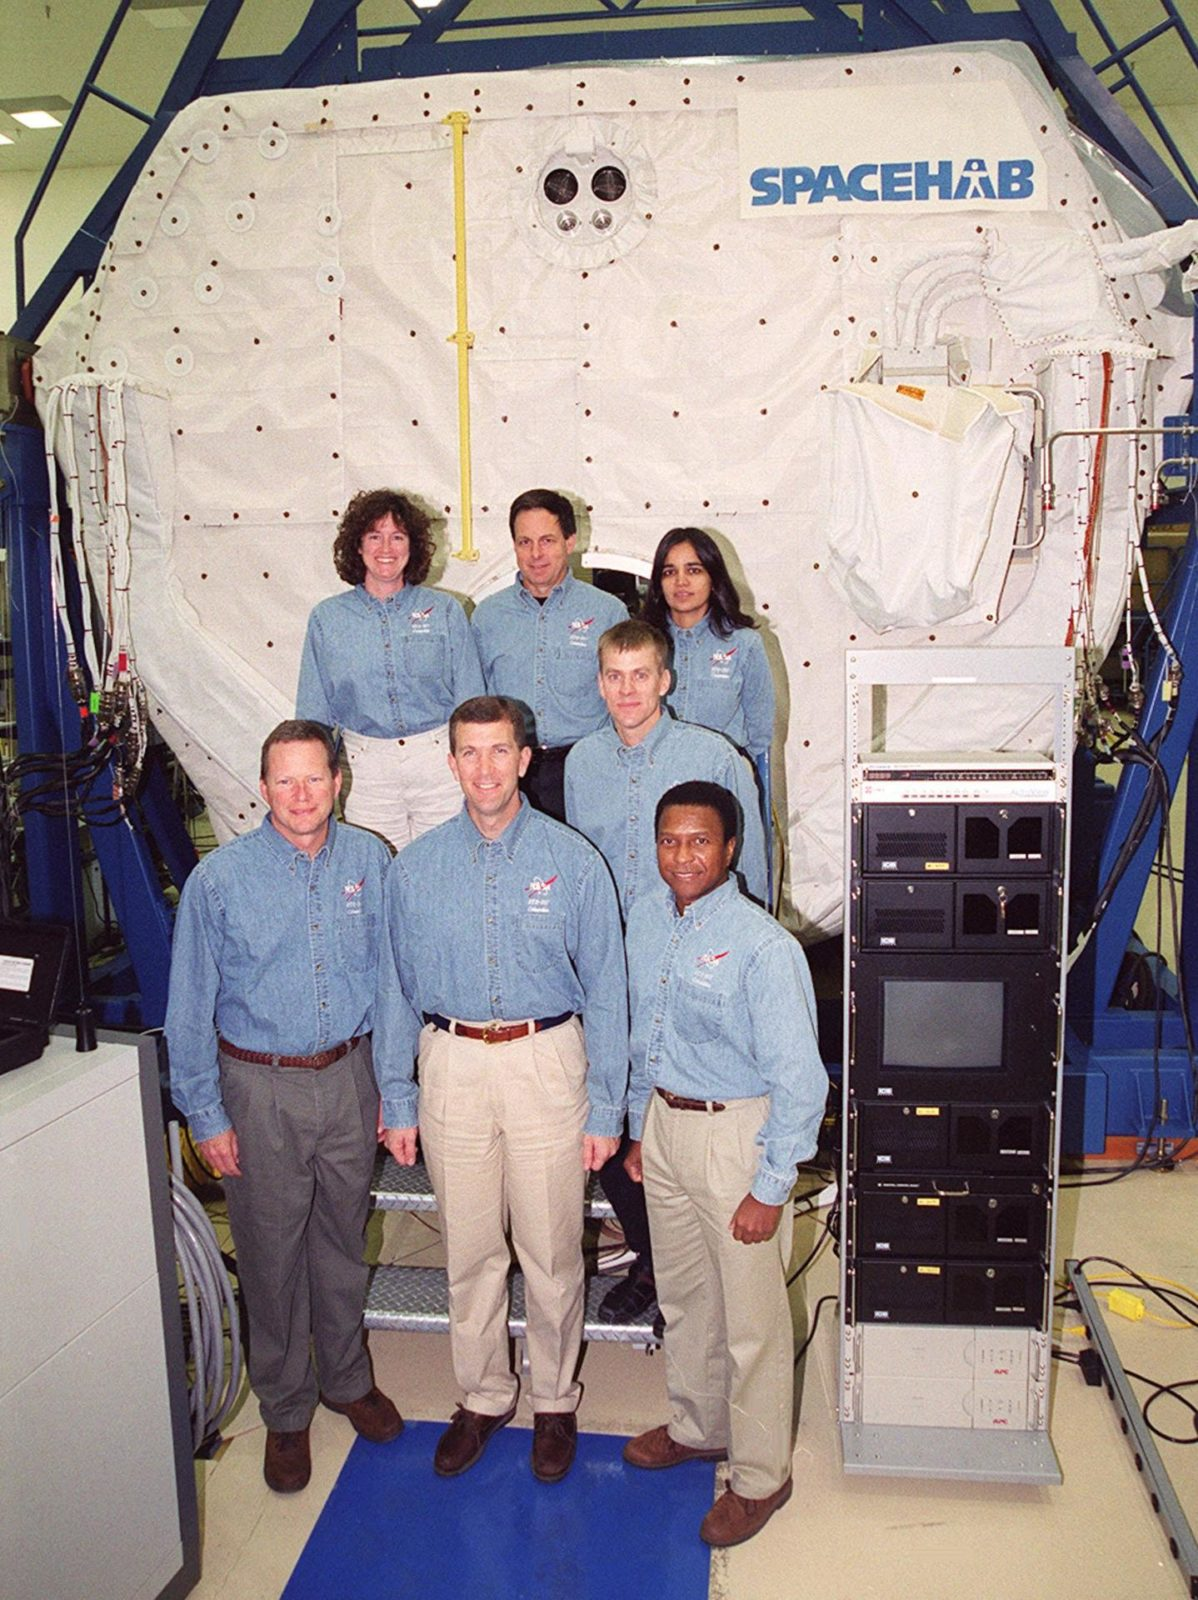 """KENNEDY SPACE CENTER, Fla. -- Taking part in In-Flight Maintenance training, the STS-107 crew poses in front of the SPACEHAB Double Module. In back are Mission Specialist Laurel Clark, Payload Specialist Ilan Ramon of Israel, and Mission Specialist Kalpana Chawla; in front are Mission Specialist David M. Brown, Commander Rick D. Husband, Pilot William C. """"Willie"""" McCool (behind) and Mission Specialist Michael Anderson. As a research mission, STS-107 will carry the SPACEHAB Double Module in its first research flight into space and a broad collection of experiments ranging from material science to life science. It is scheduled to launch July 19, 2001 KSC-00pp1852"""